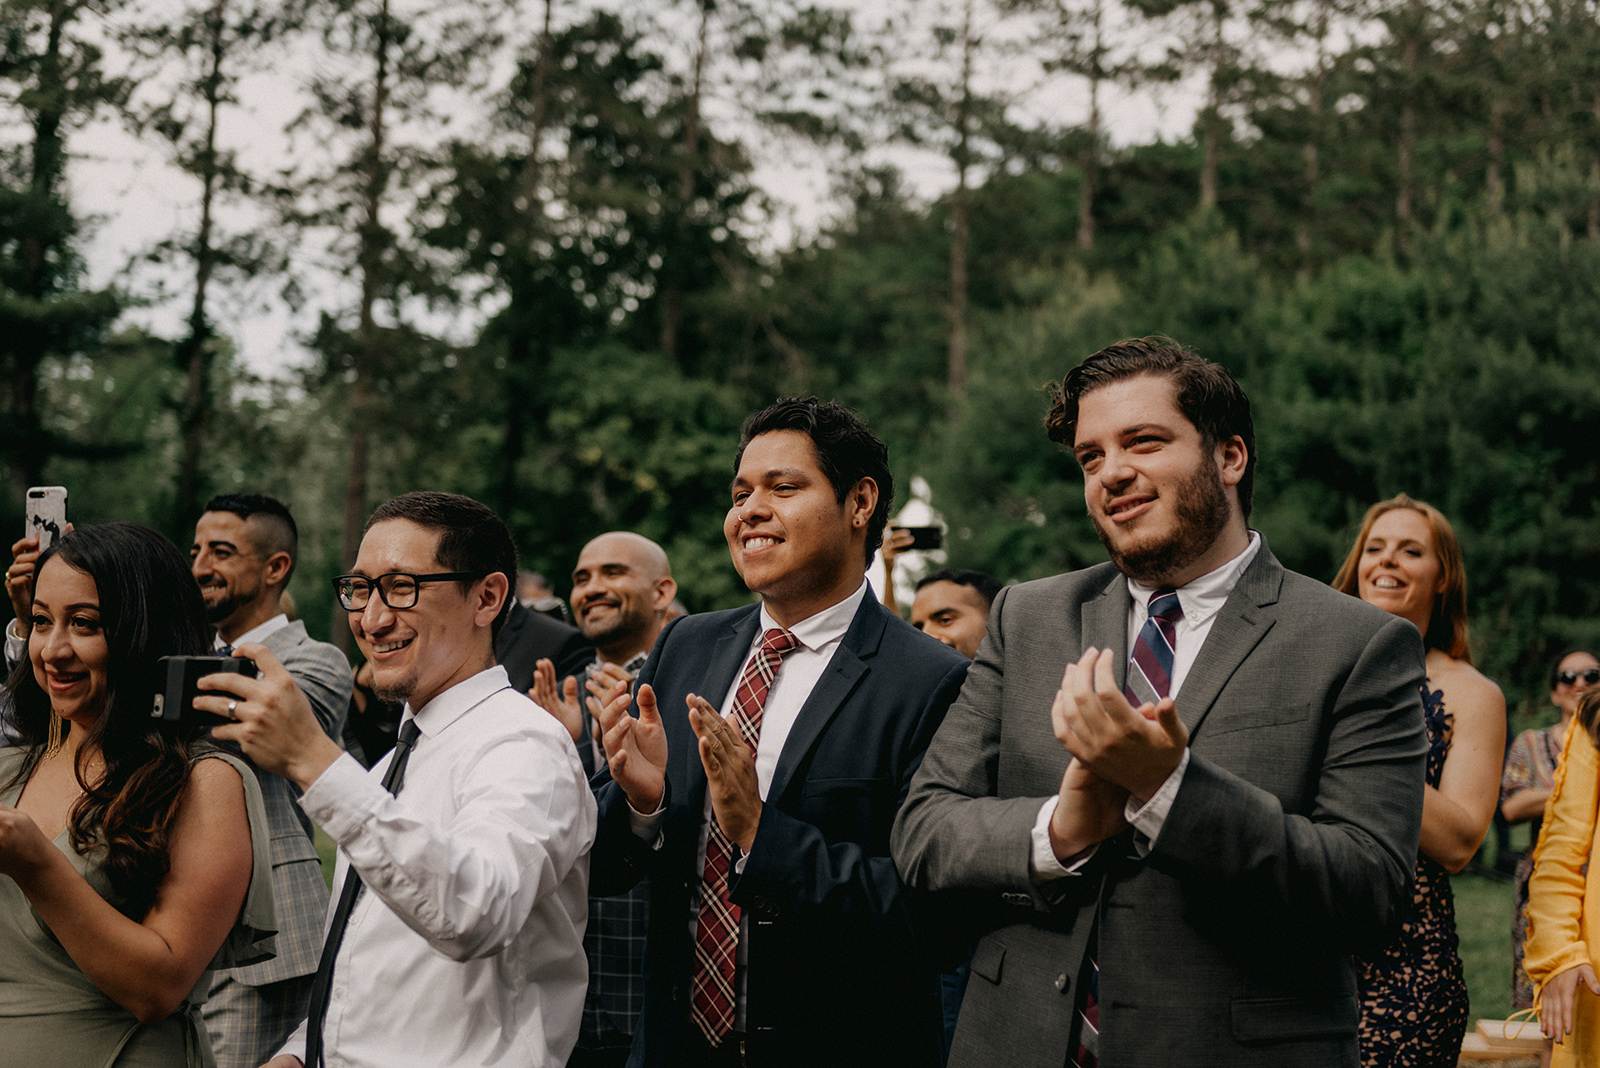 When your friends and family are there to support you on your wedding day! - Pearl Weddings & Events